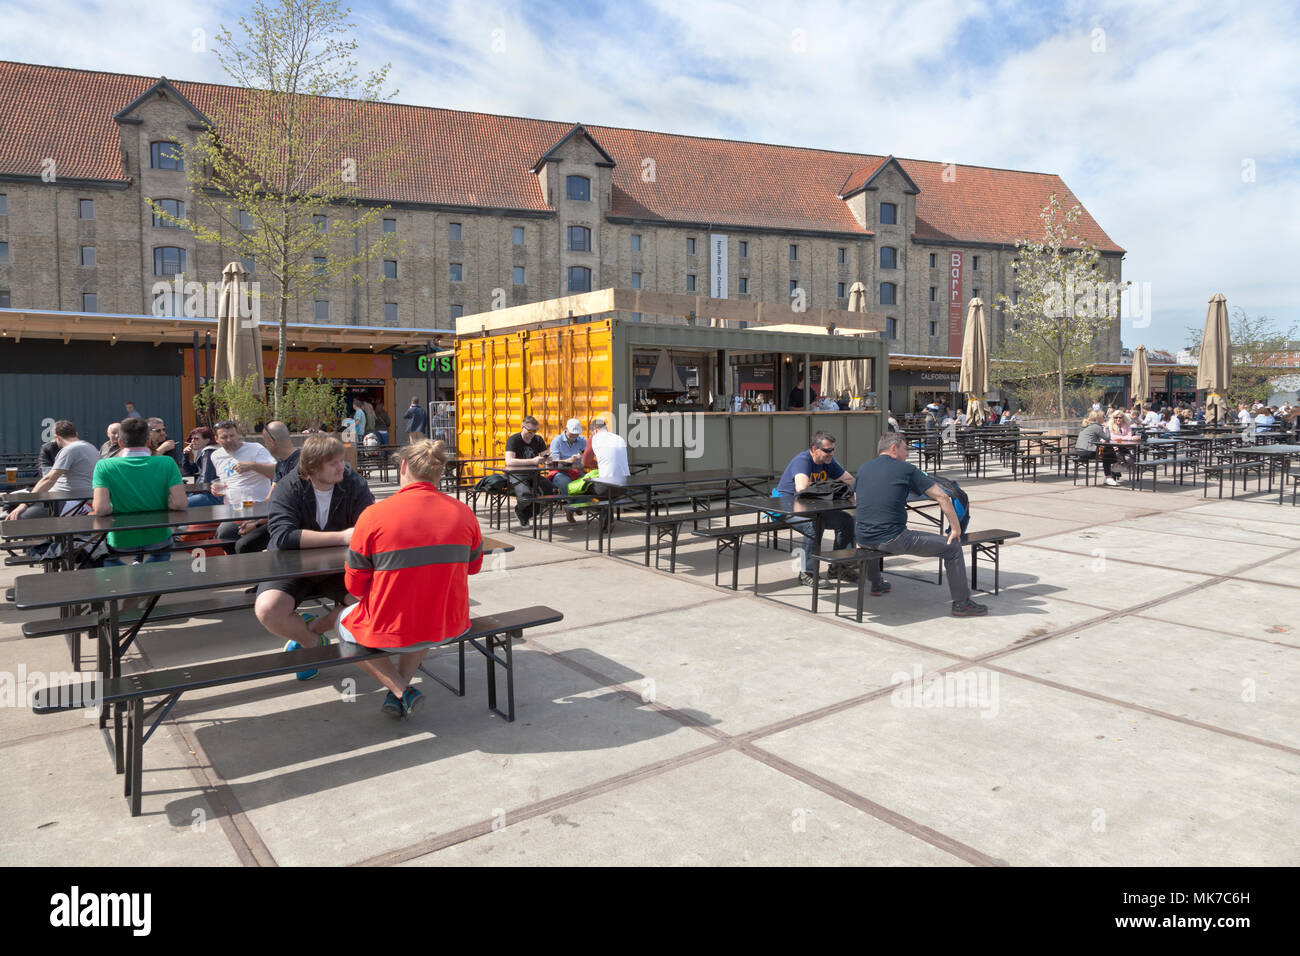 The opening day of new street food market in Copenhagen at the Greenlandic Trading Square in Christianshavn, where the Inner Harbour Bridge is landing - Stock Image